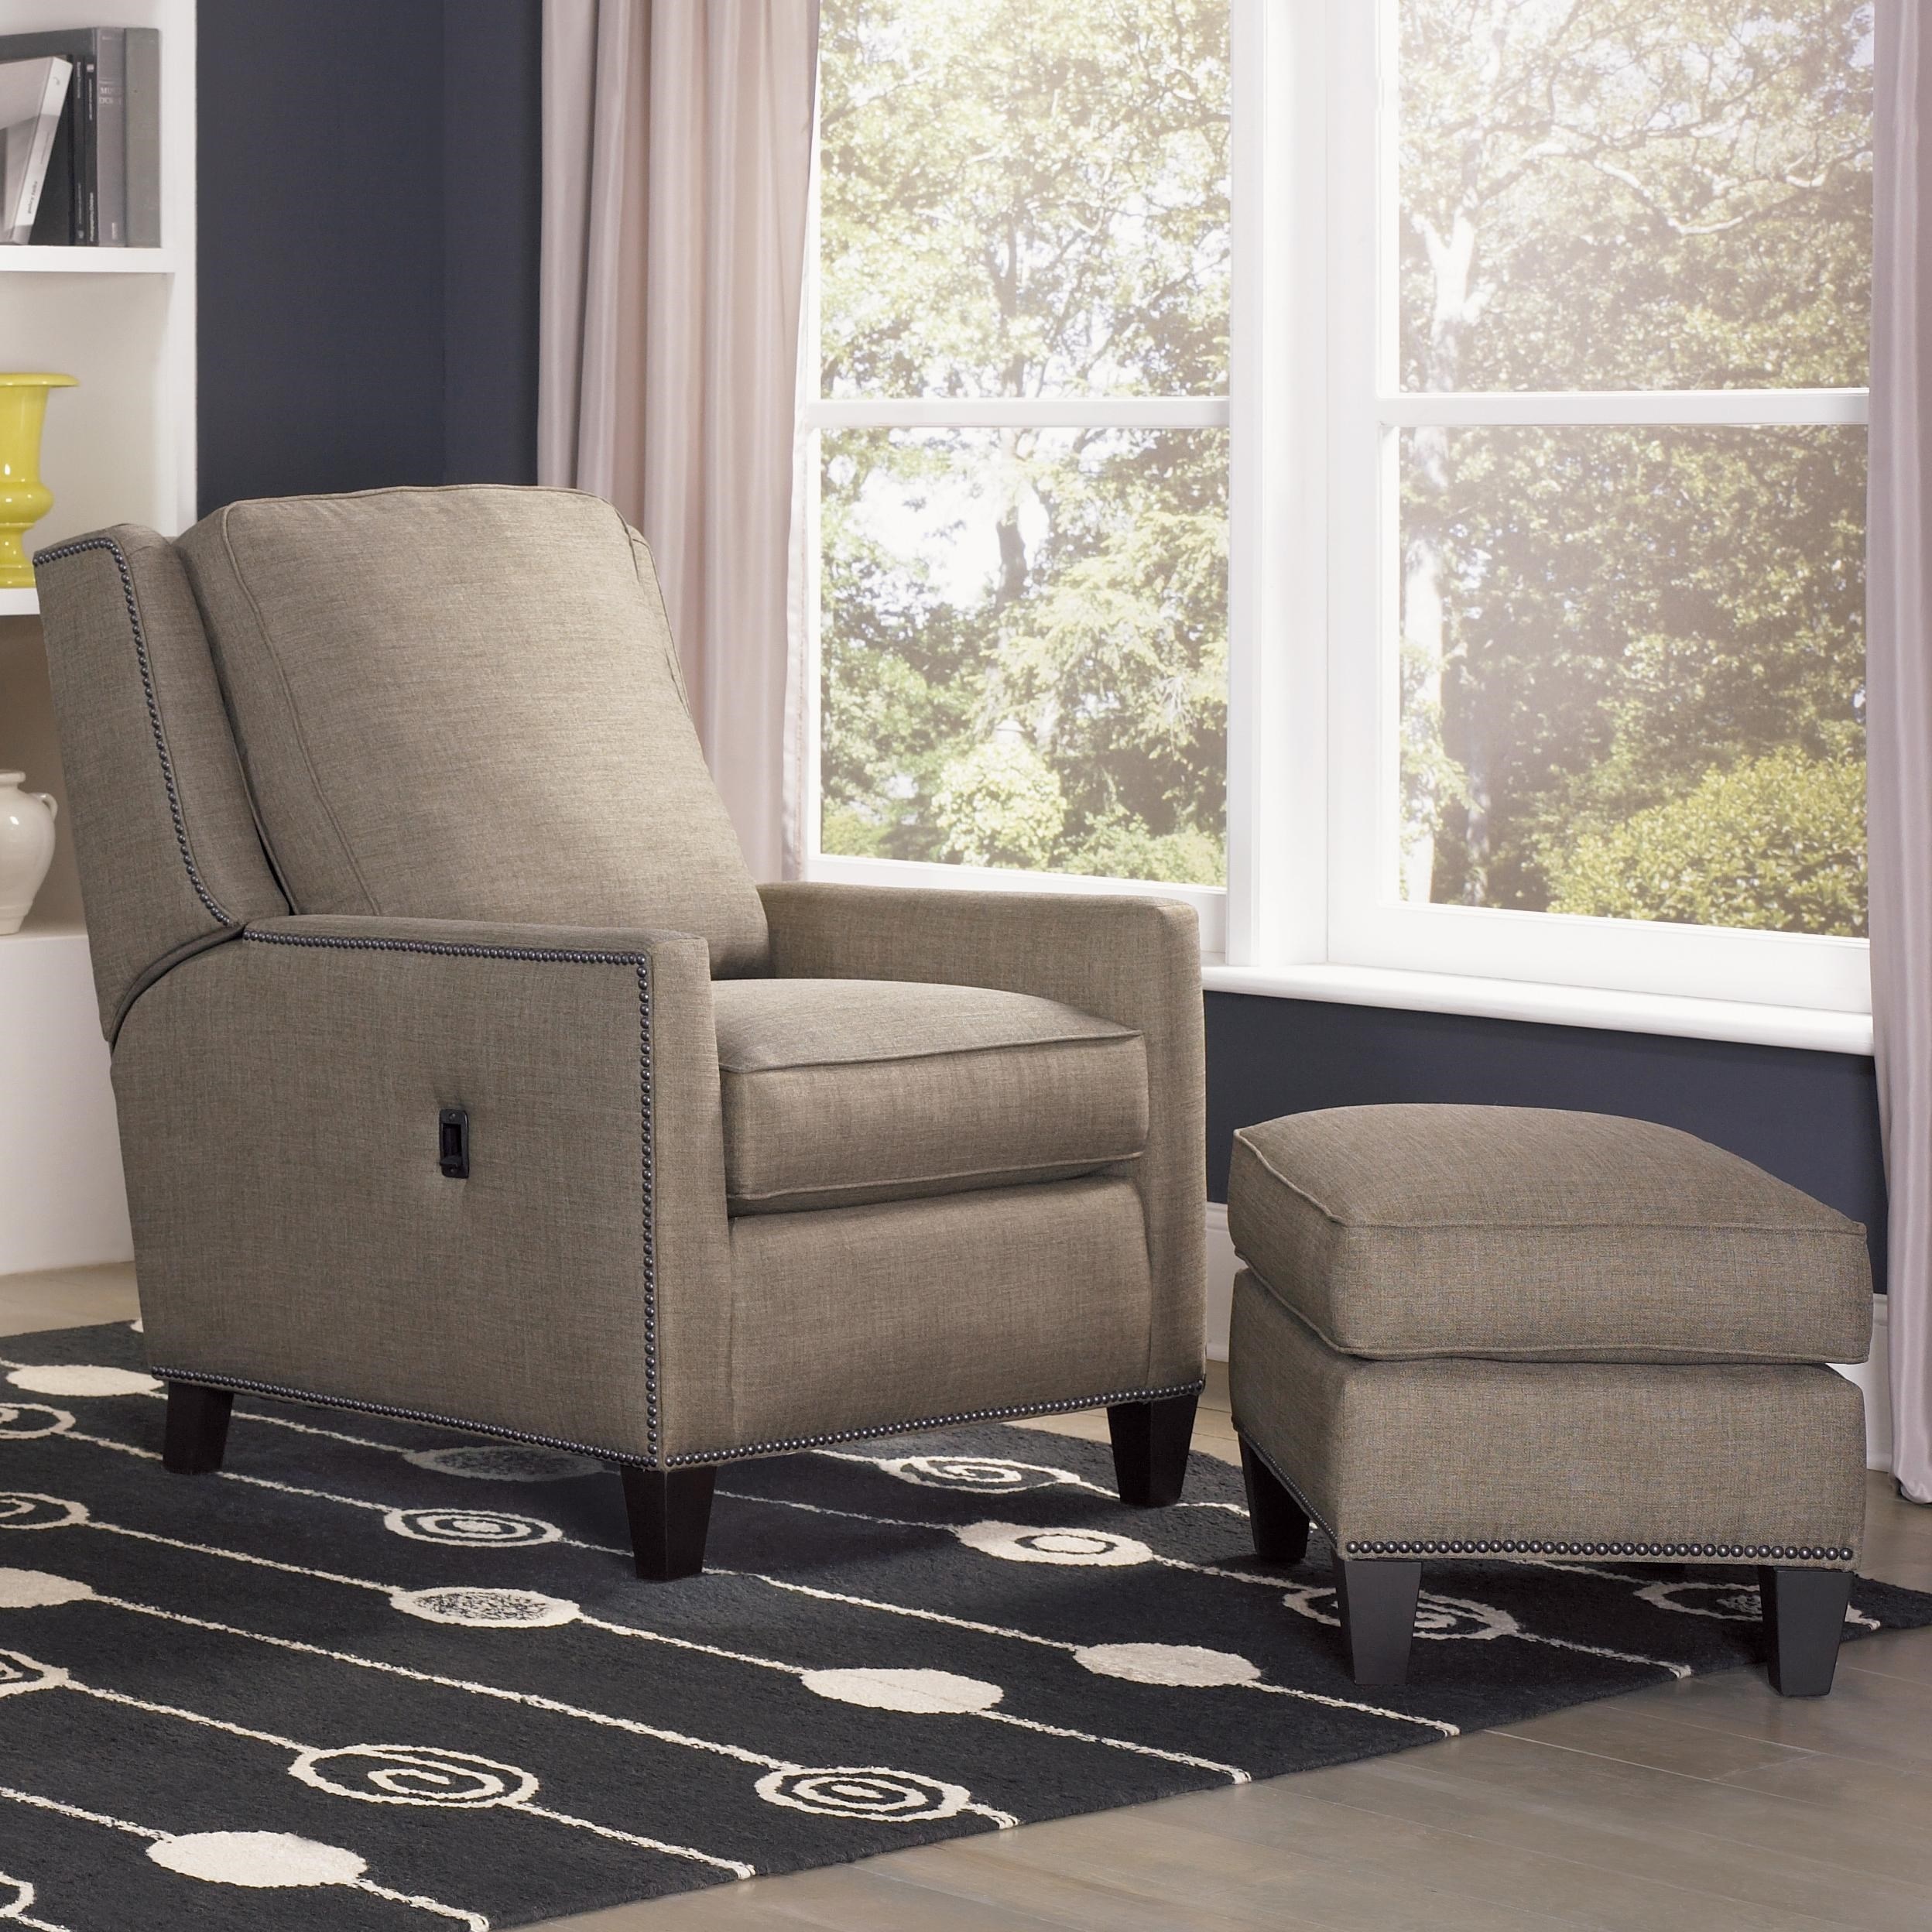 Delicieux Smith Brothers Recliners Transitional Tilt Back Chair And Ottoman  Combination